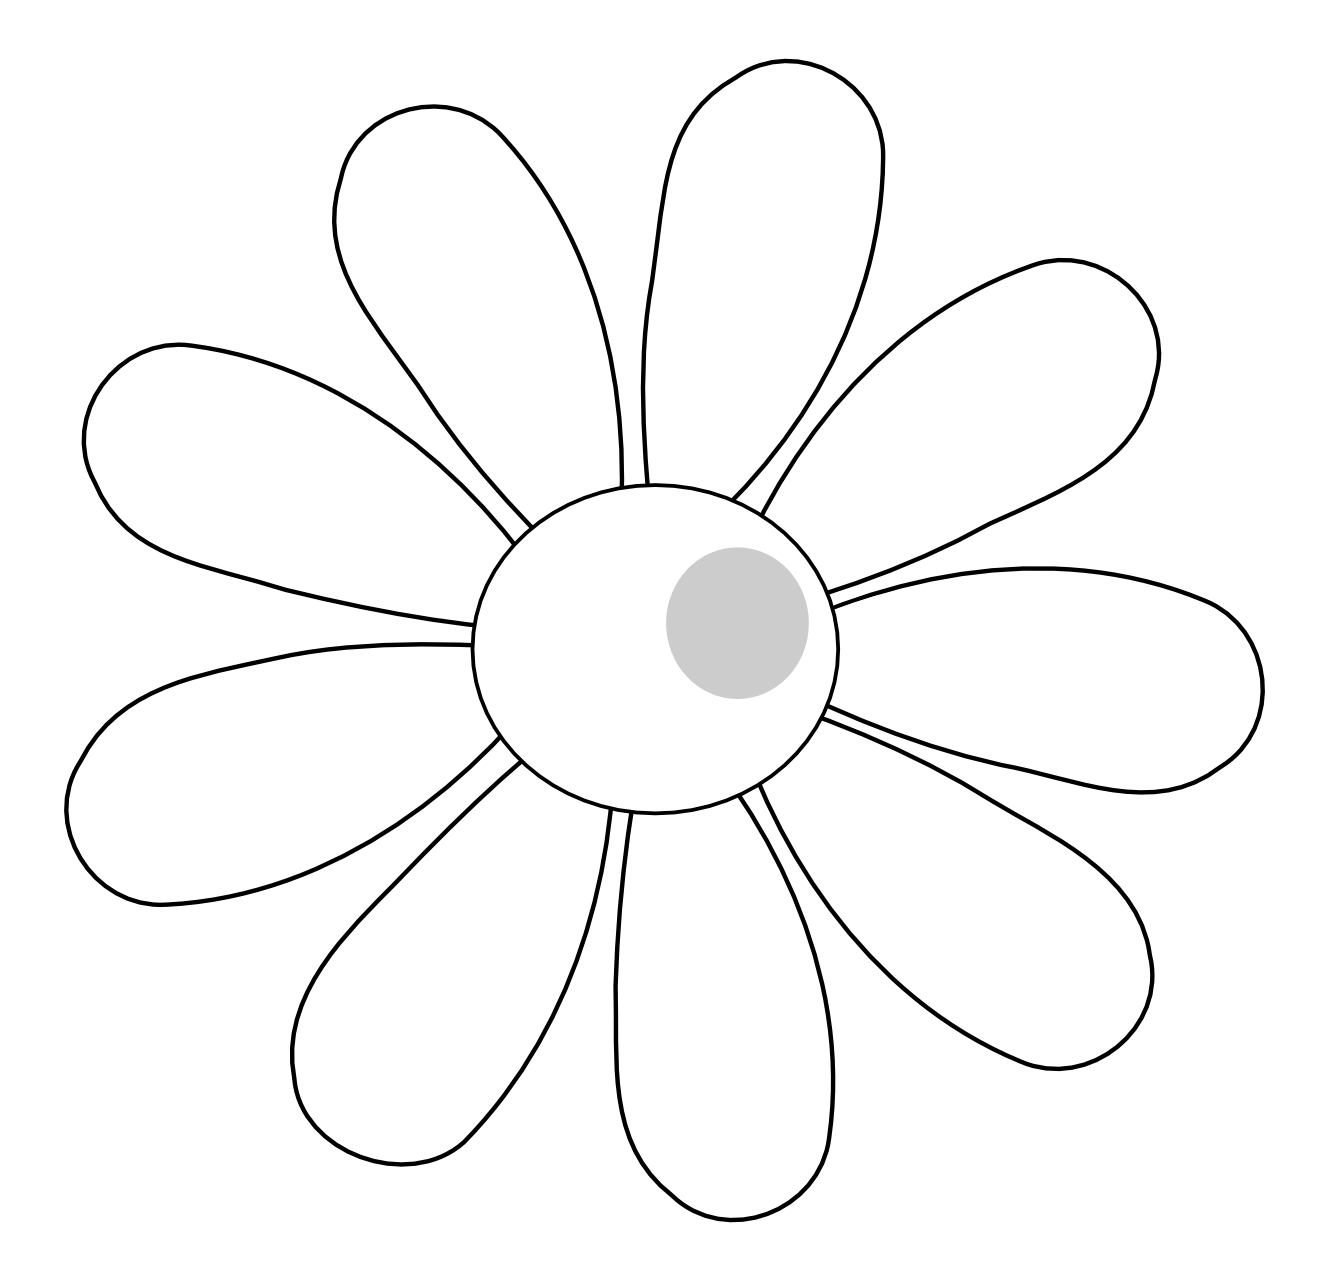 Daisy Clipart Black And White-daisy clipart black and white-16